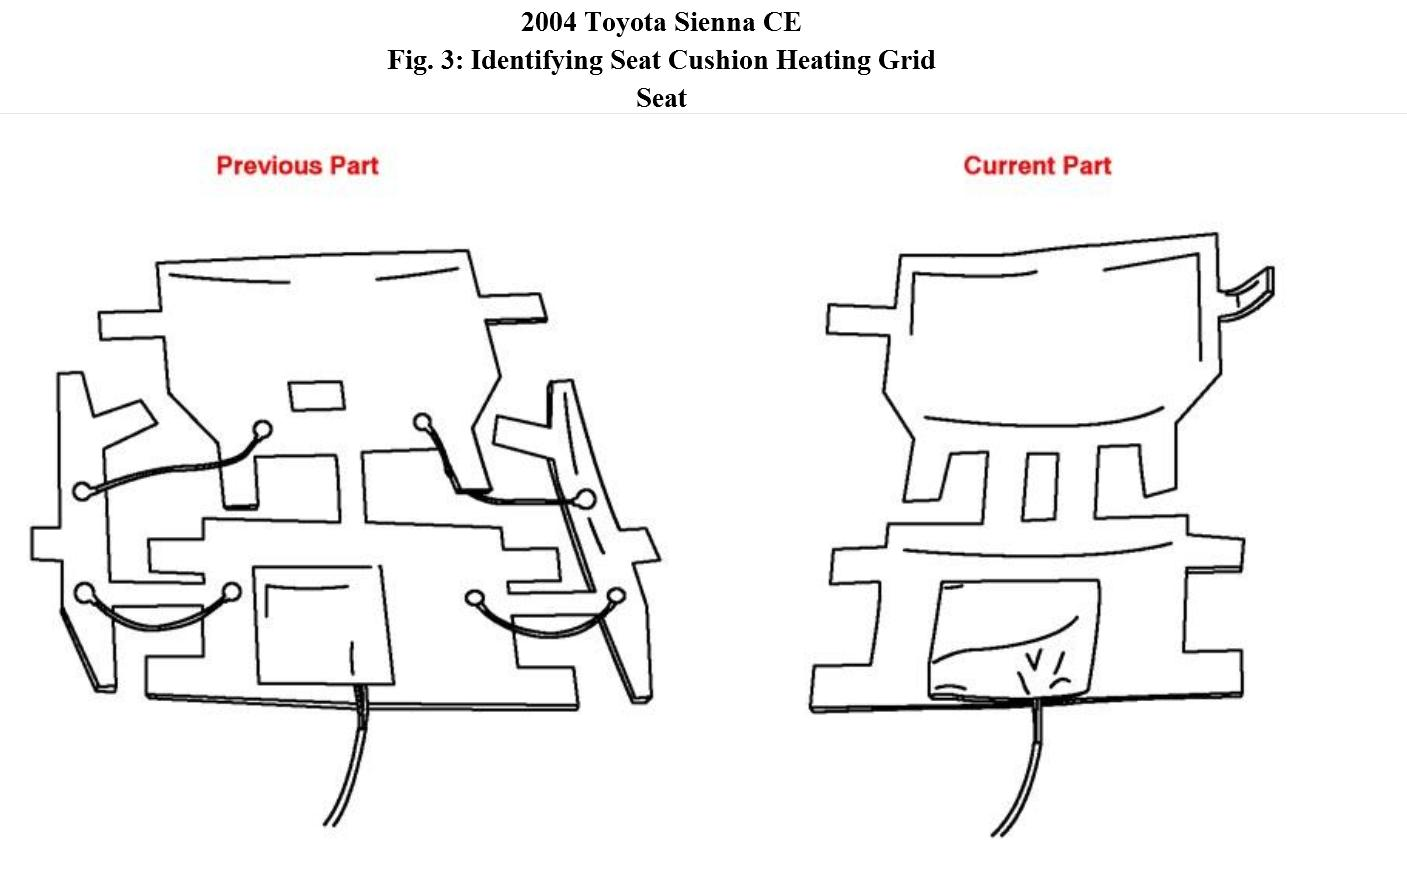 Heated Seats Inop (front) Can't Find Tsb Ac005-04r Dated